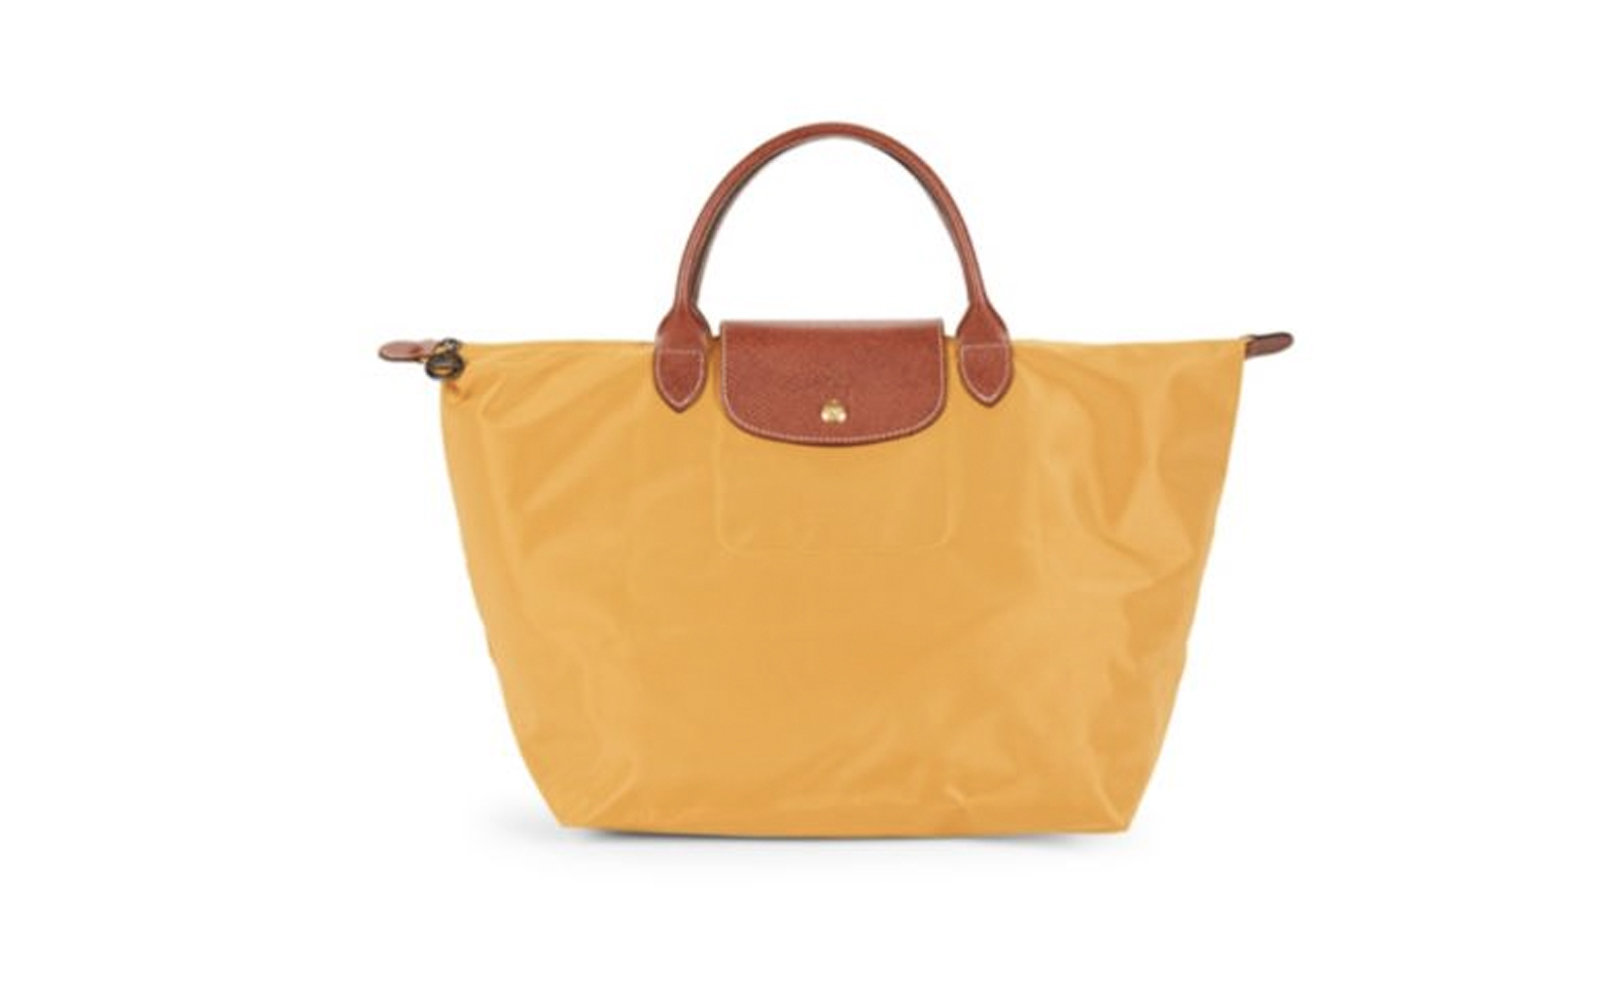 Longchamp Medium Le Pliage Top Handle Bag In Sunshine Yellow